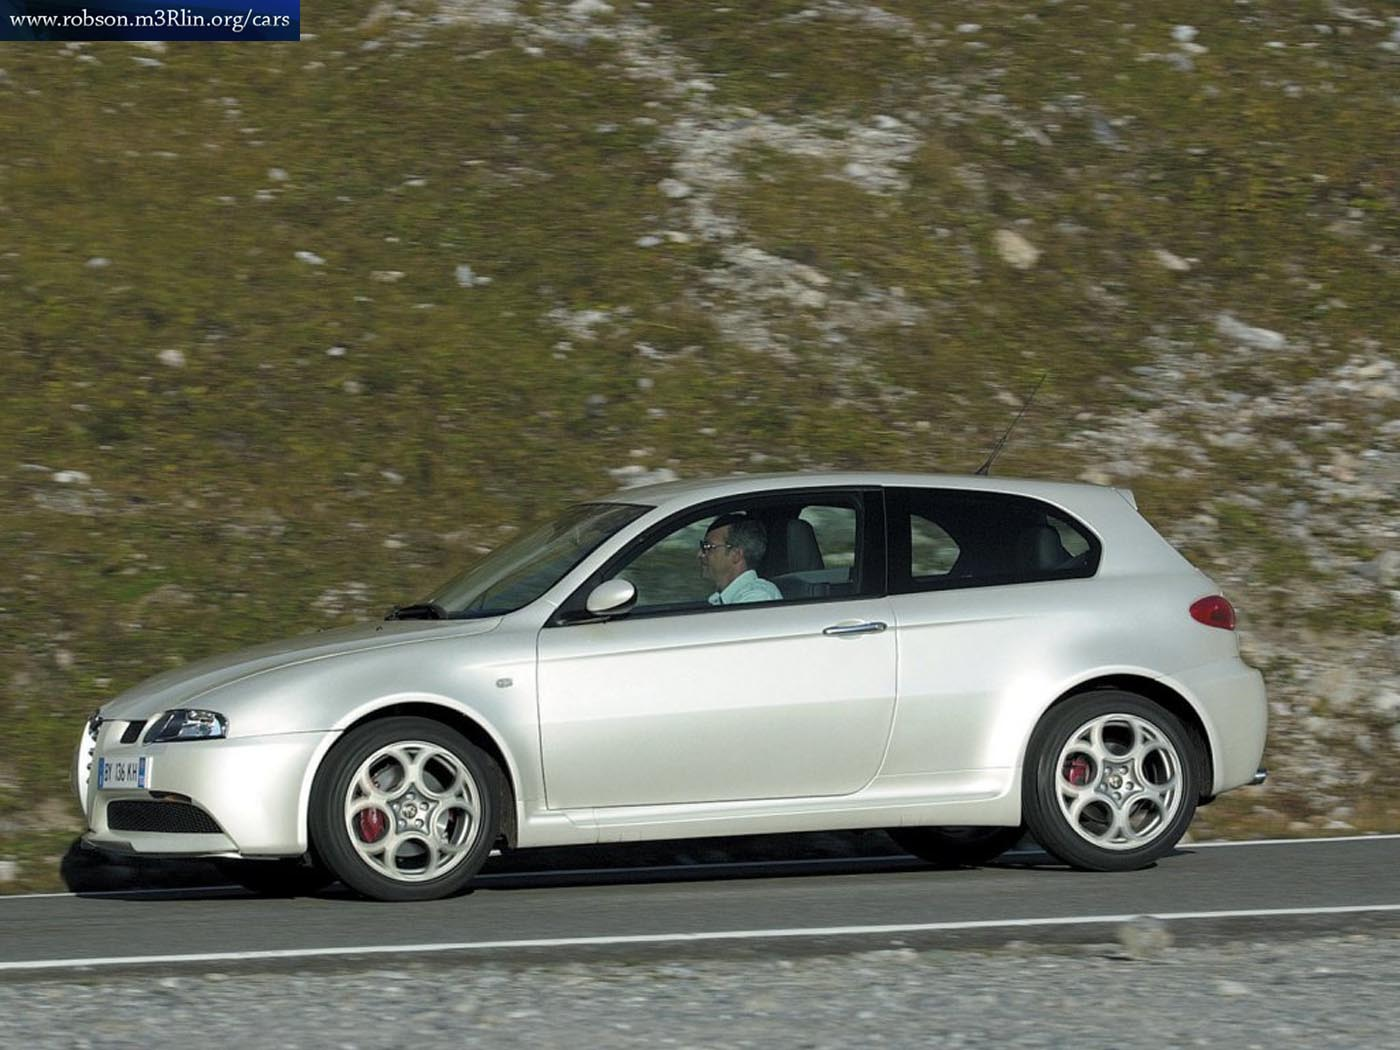 2004 alfa romeo 147 gta pictures information and specs. Black Bedroom Furniture Sets. Home Design Ideas